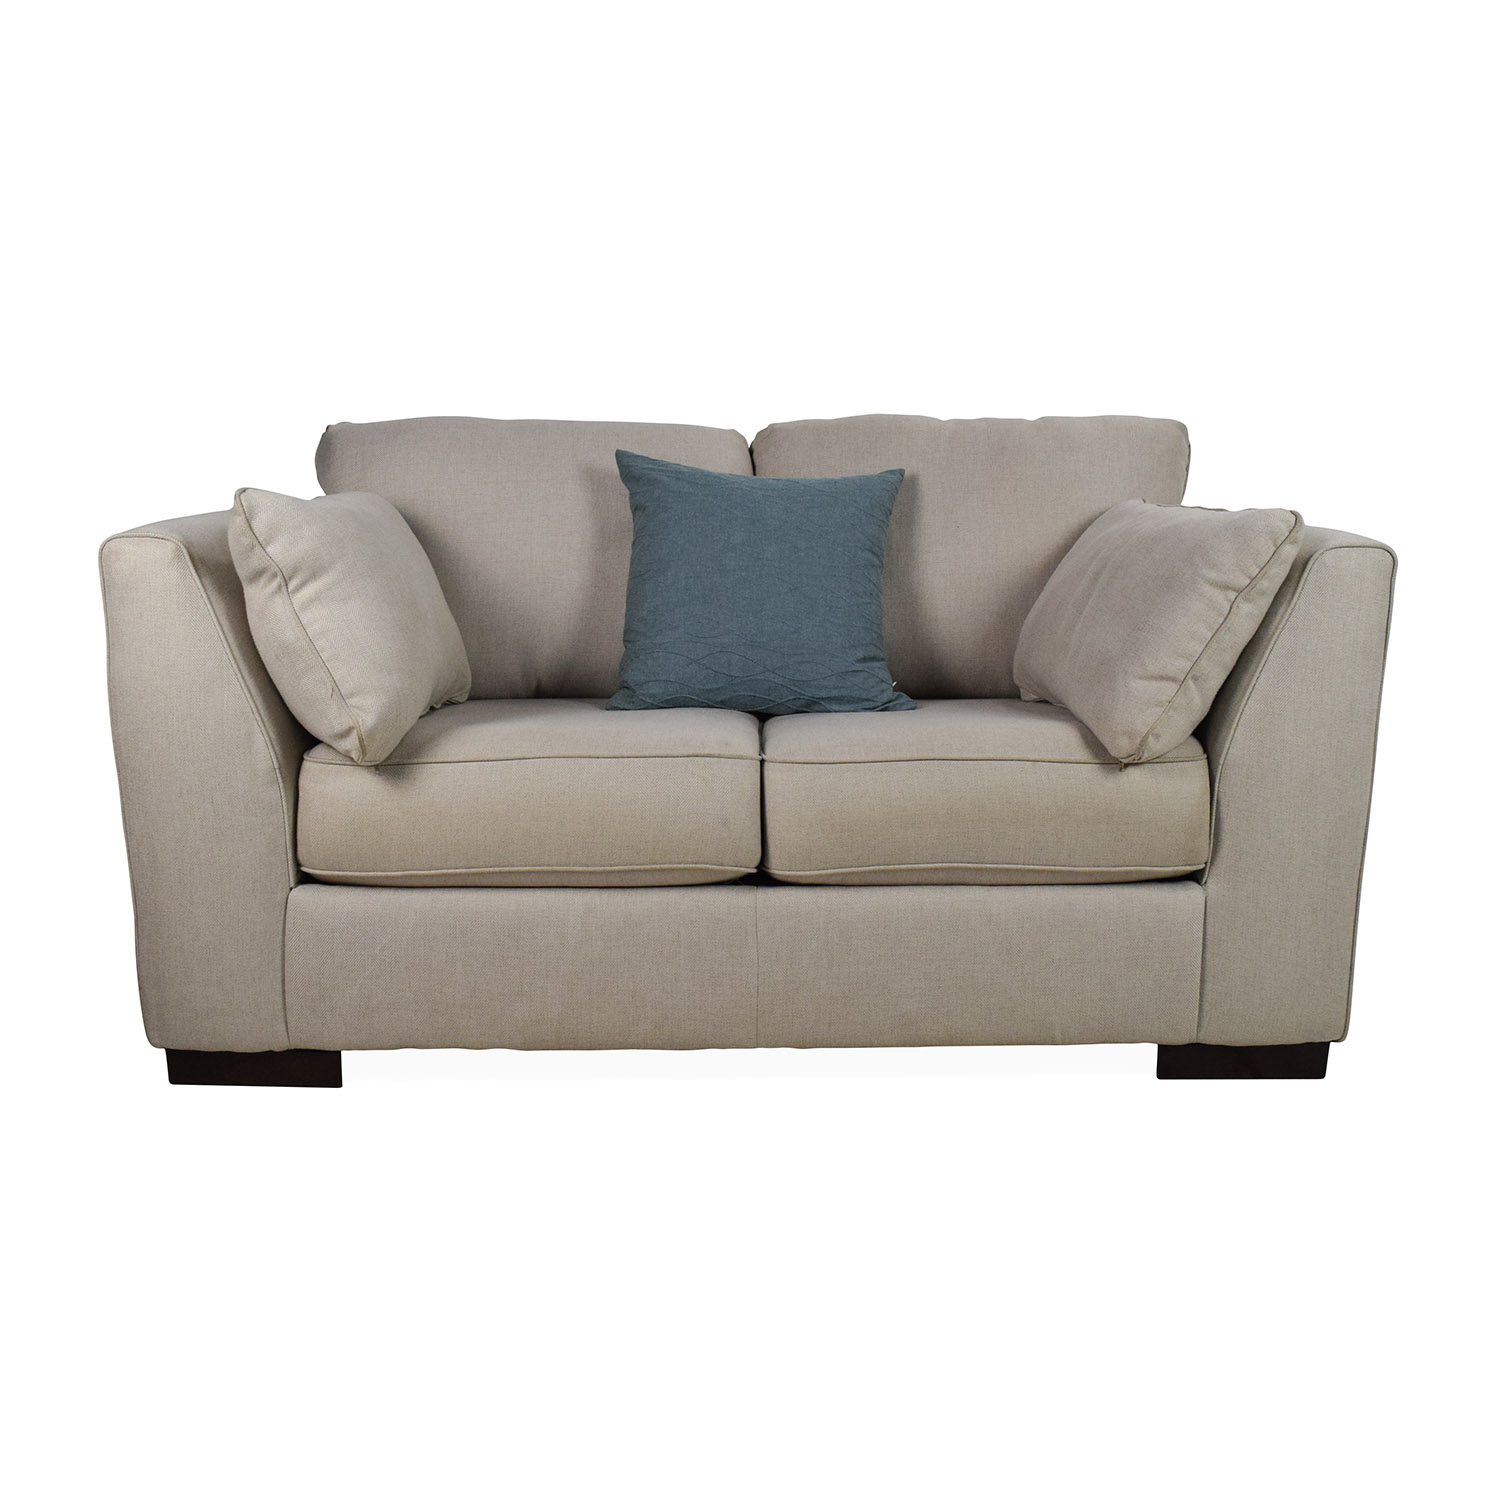 Used Sofa And Loveseat Sofa Reclining Sets Set Deals Couch Used Leather Thesofa